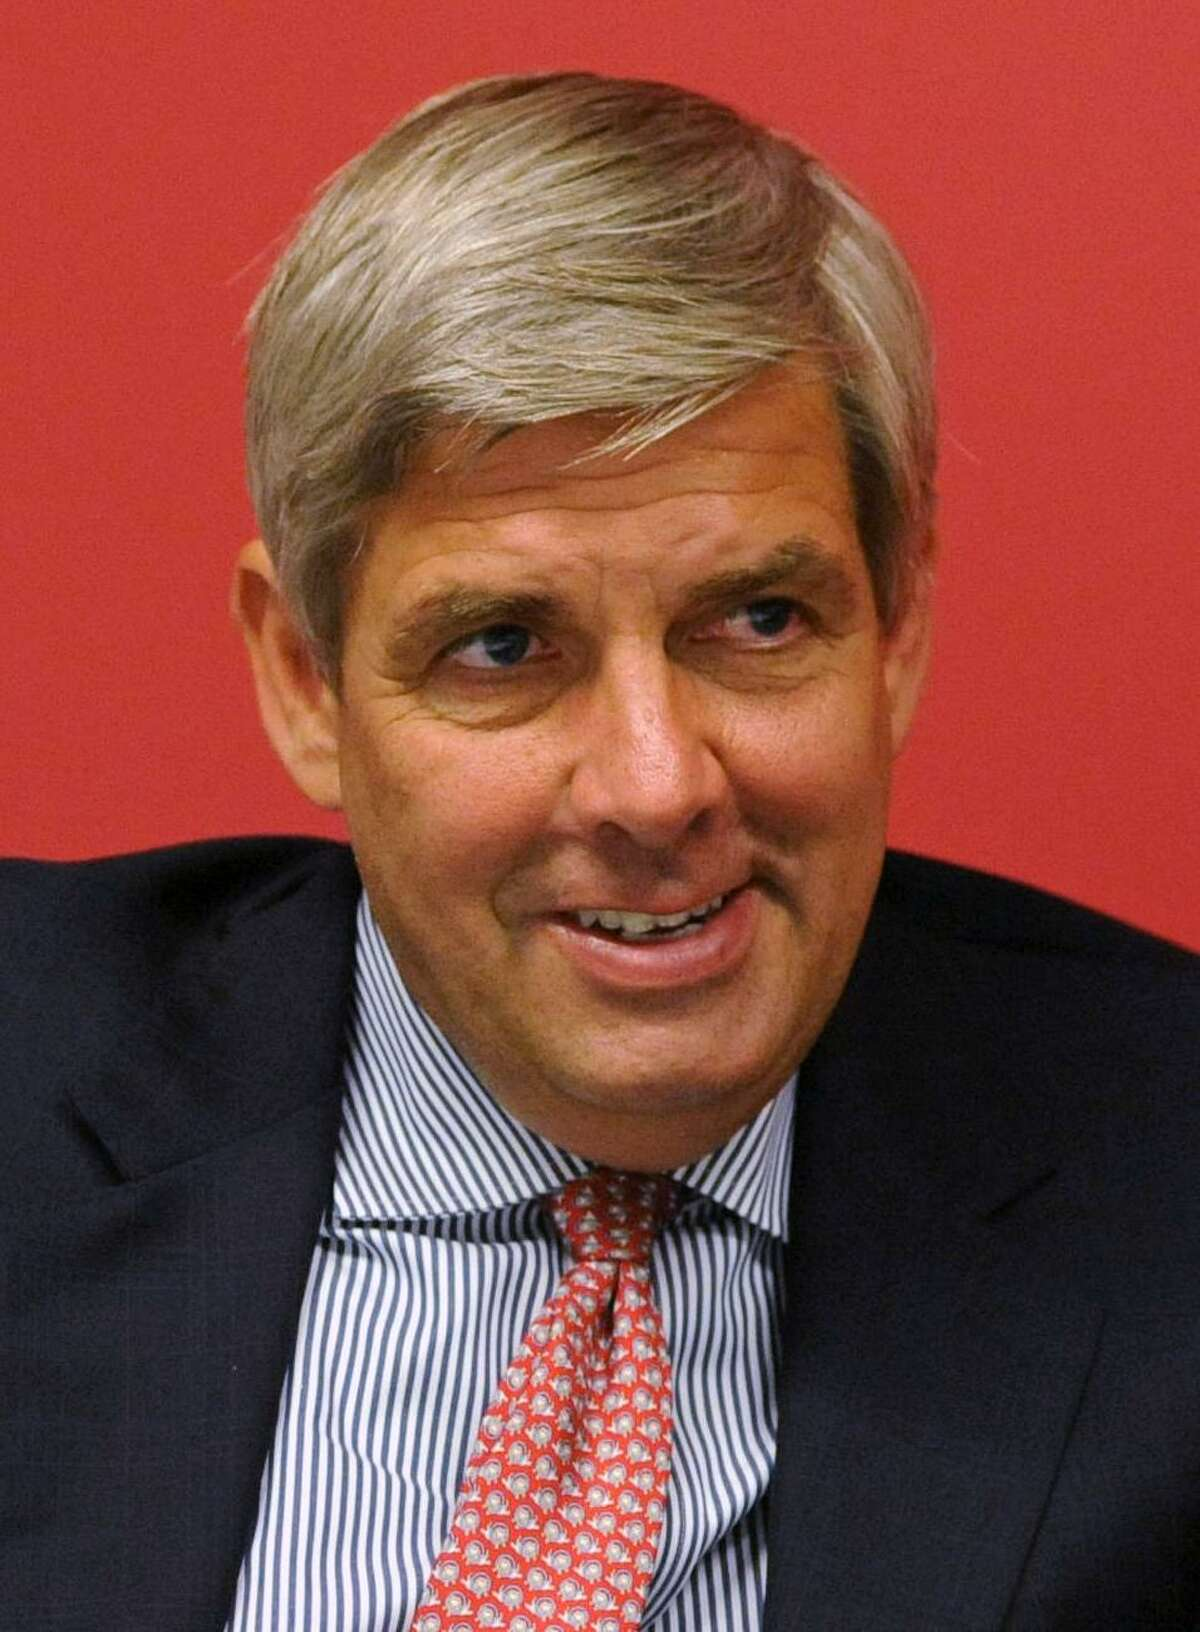 Bob Stefanowski, Republican candidate for governor of Connecticut, meets with the Hearst editorial board on Thursday, August 3, 2018.